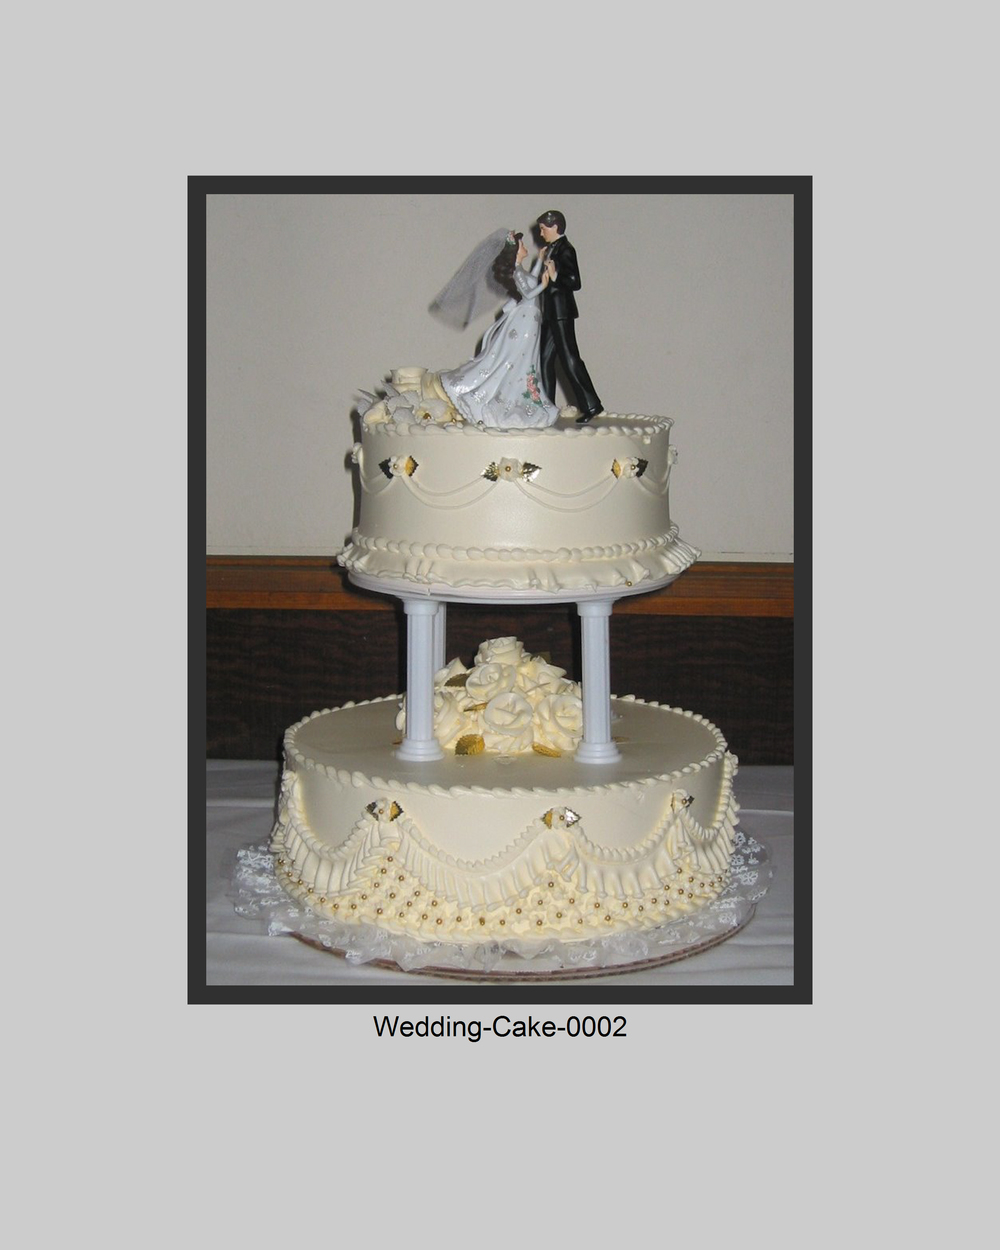 Wedding Cake Prints-002.jpg